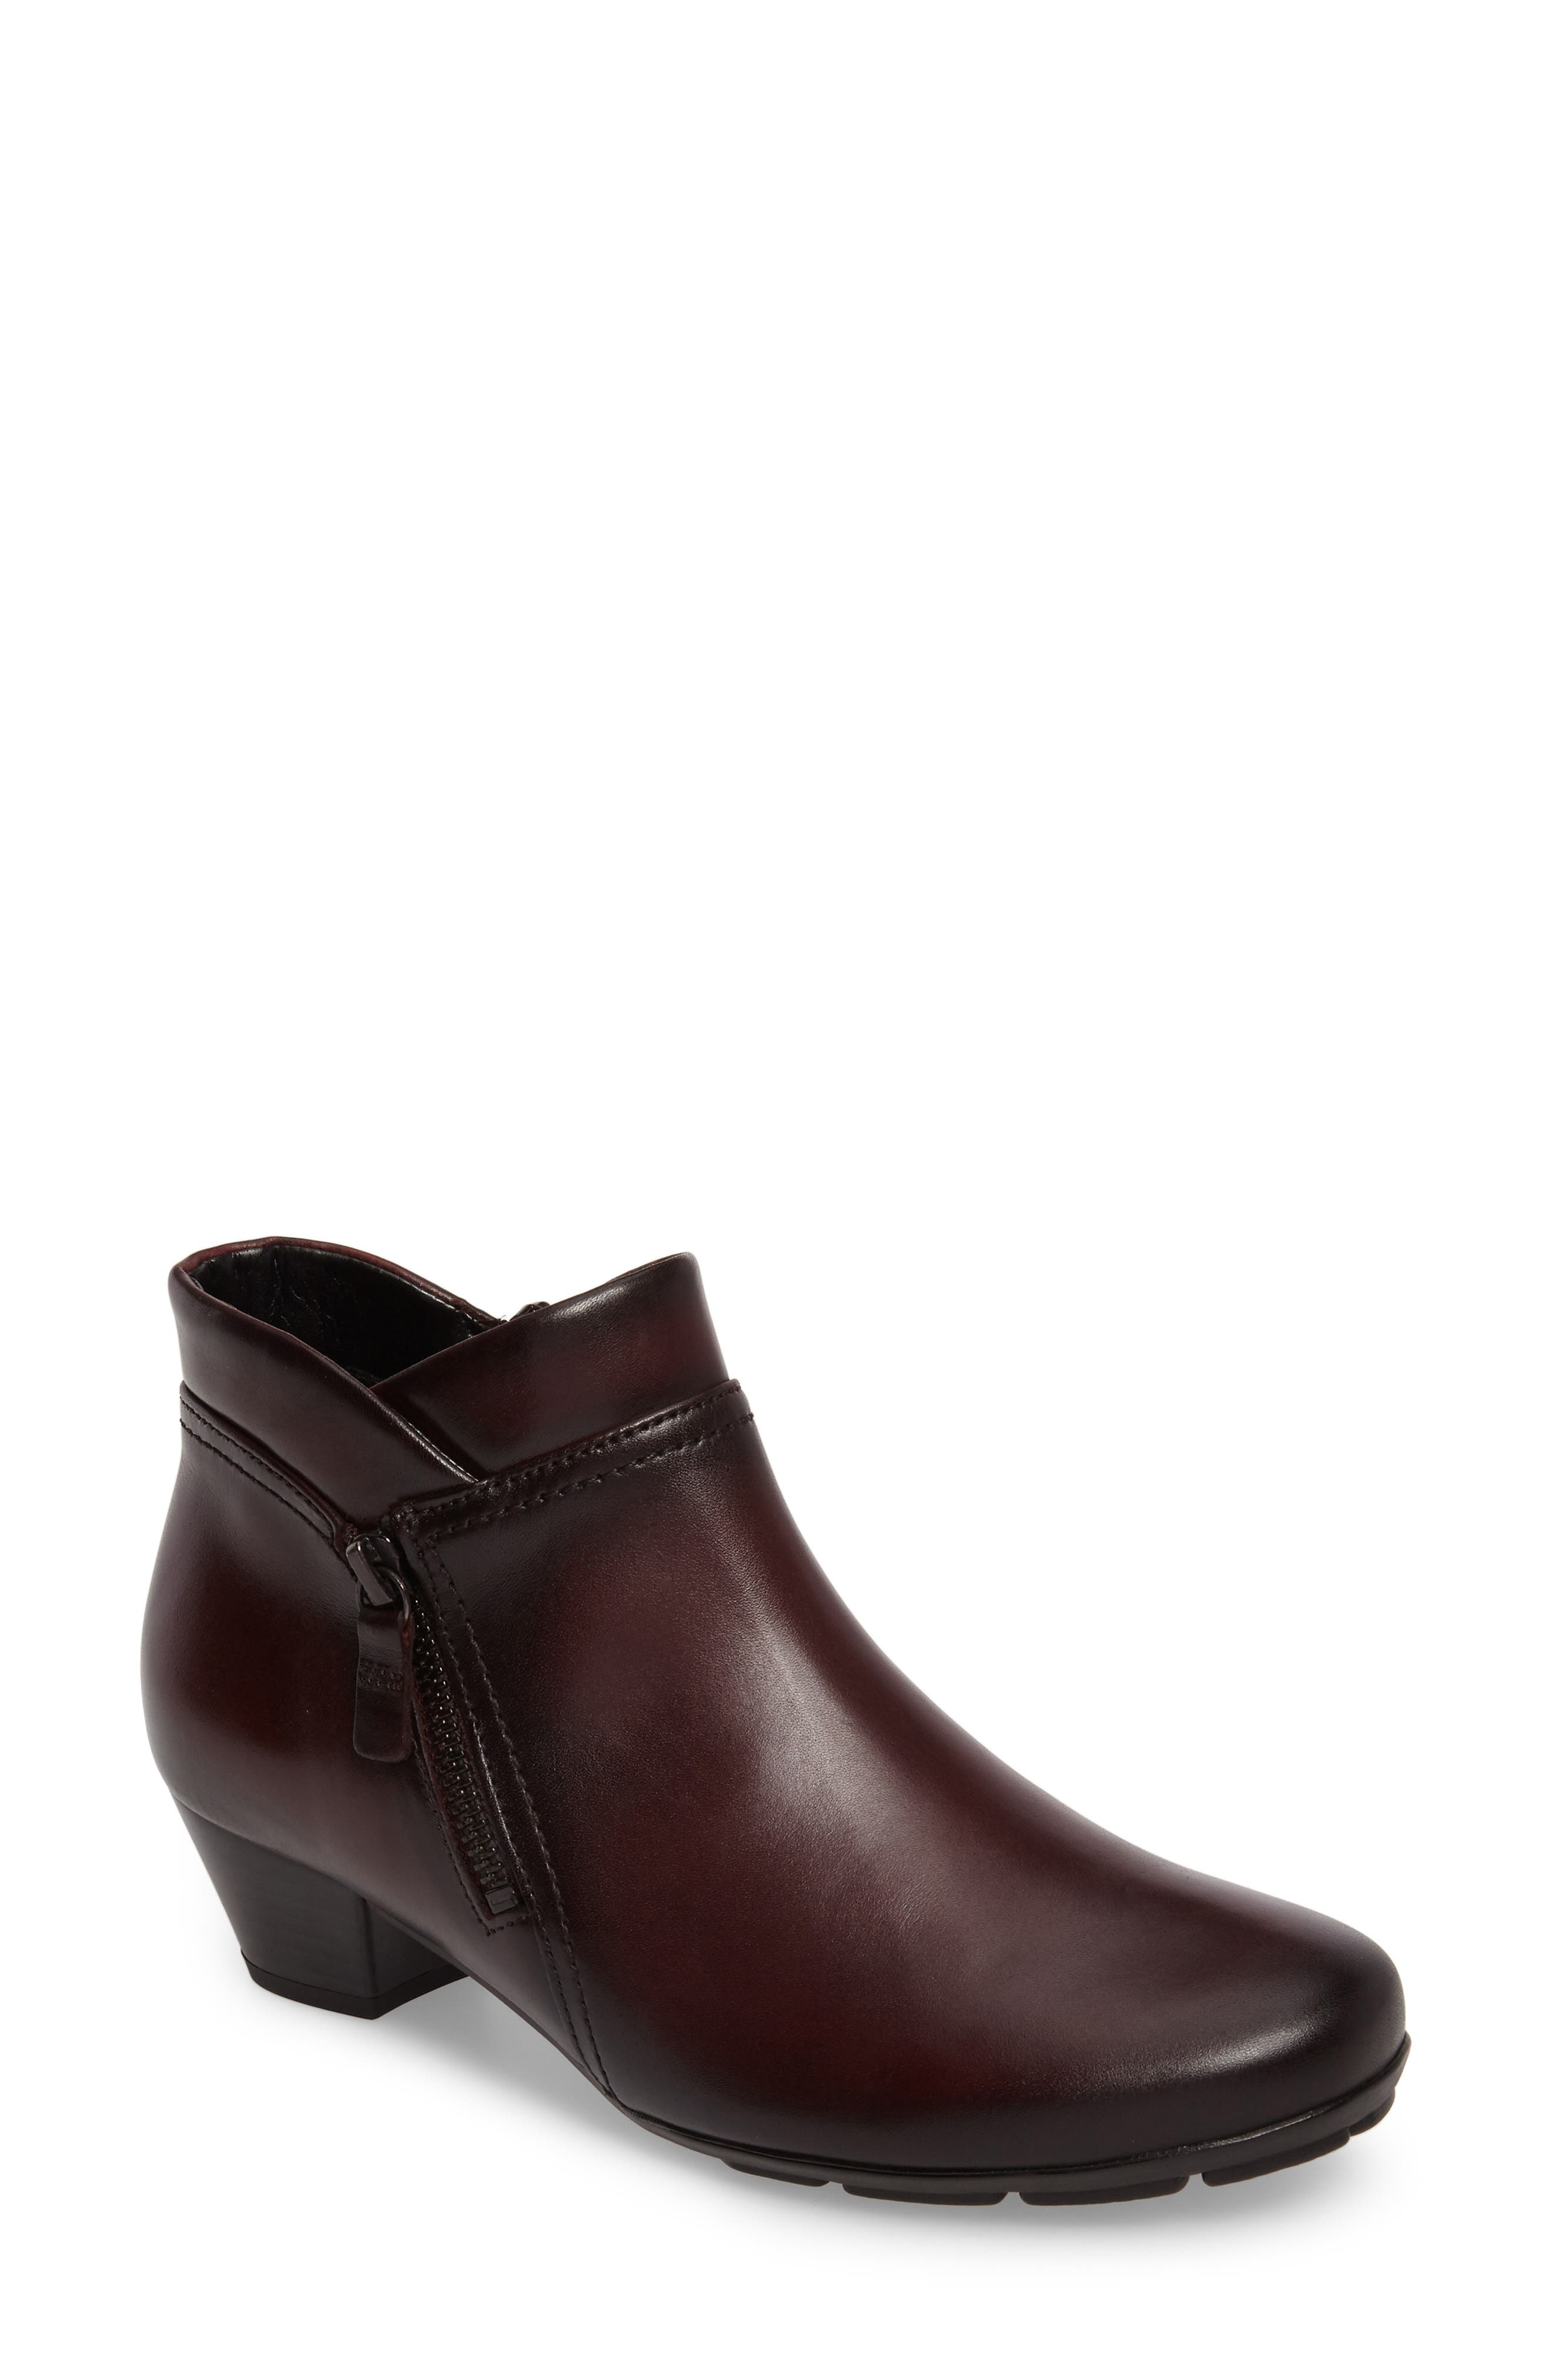 Classic Ankle Boot,                             Main thumbnail 1, color,                             WINE LEATHER